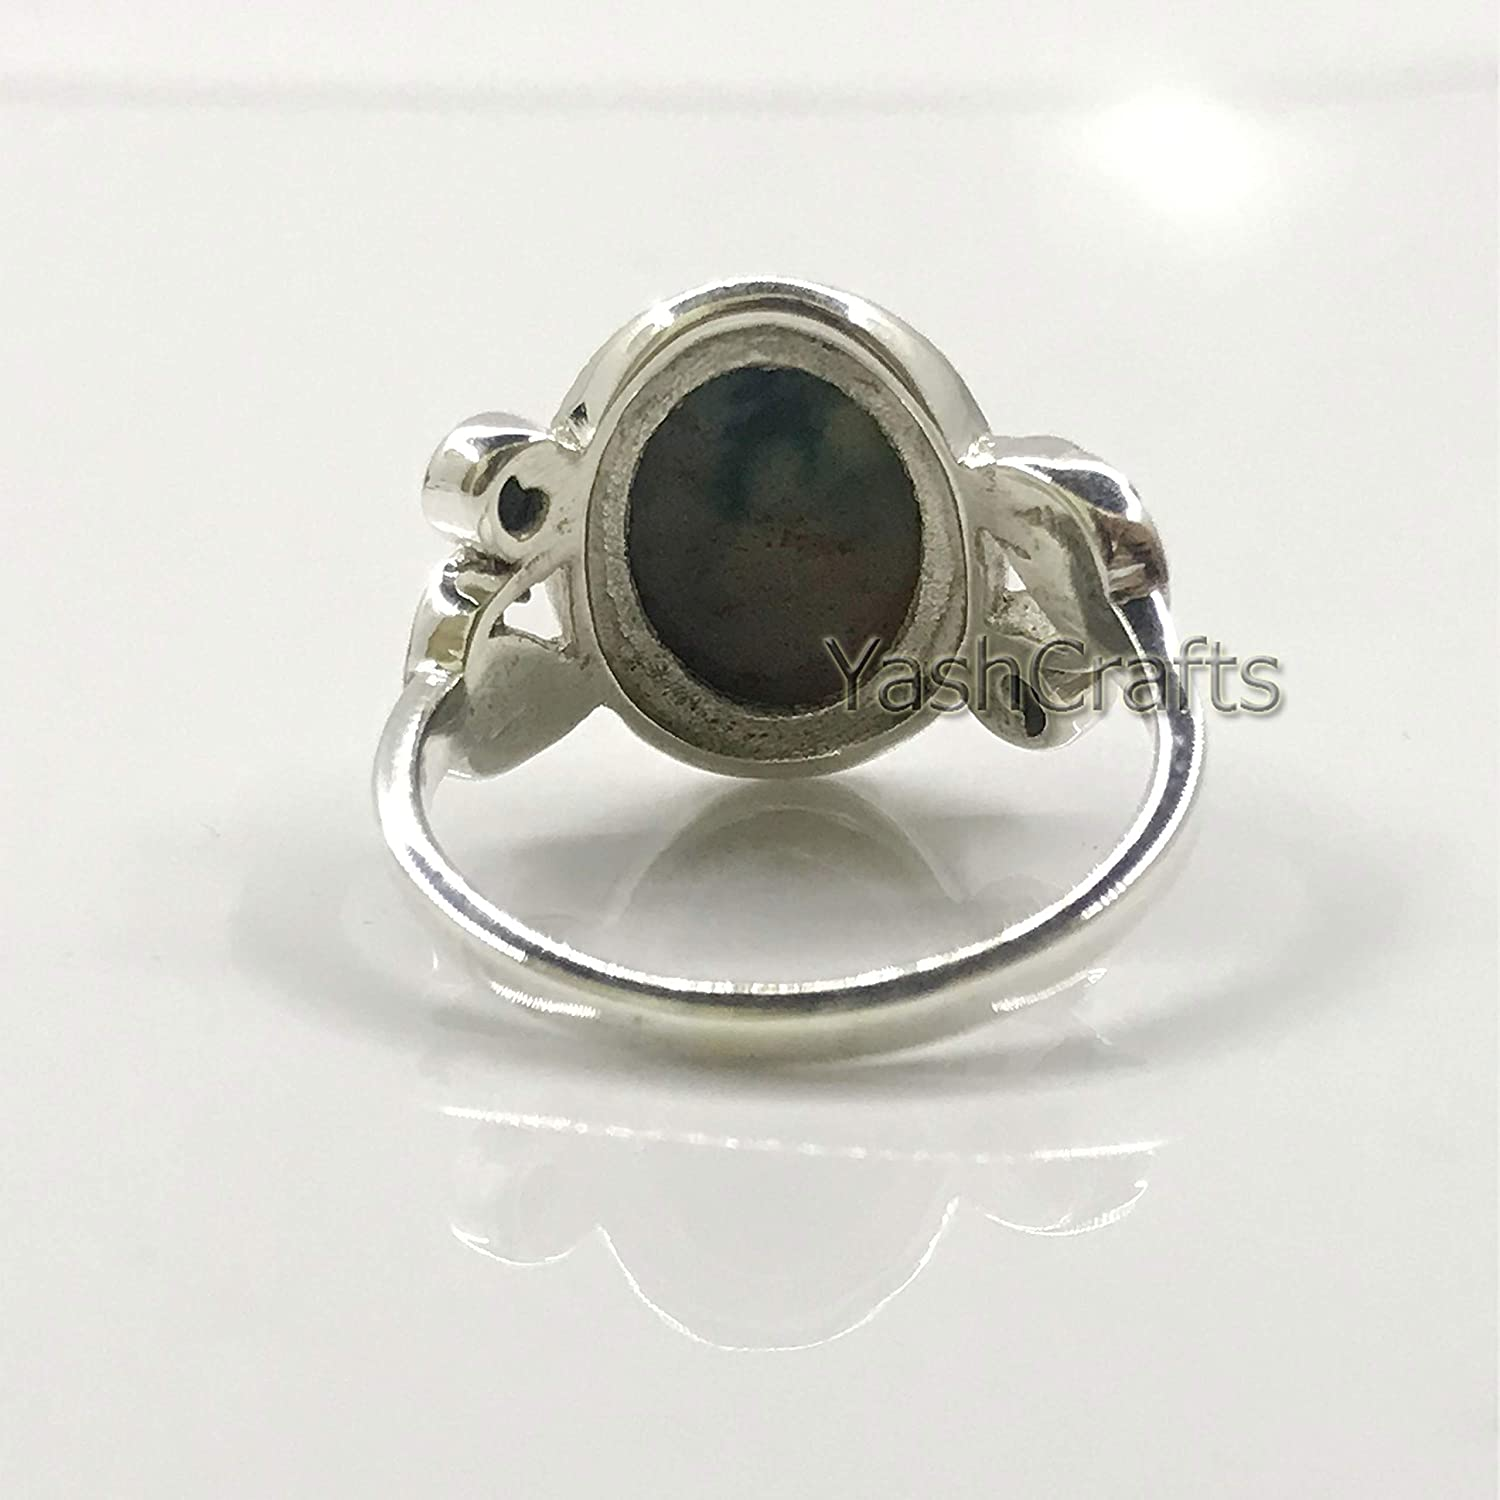 Silver Ring Genuine Gemstone Womens Ring Gift For Her 92.5 Sterling Silver Blood Stone Ring Valentine Day Gift Blood Stone Jewelry Gift For Mom Wife Sister Natural Blood Stone Womens Ring